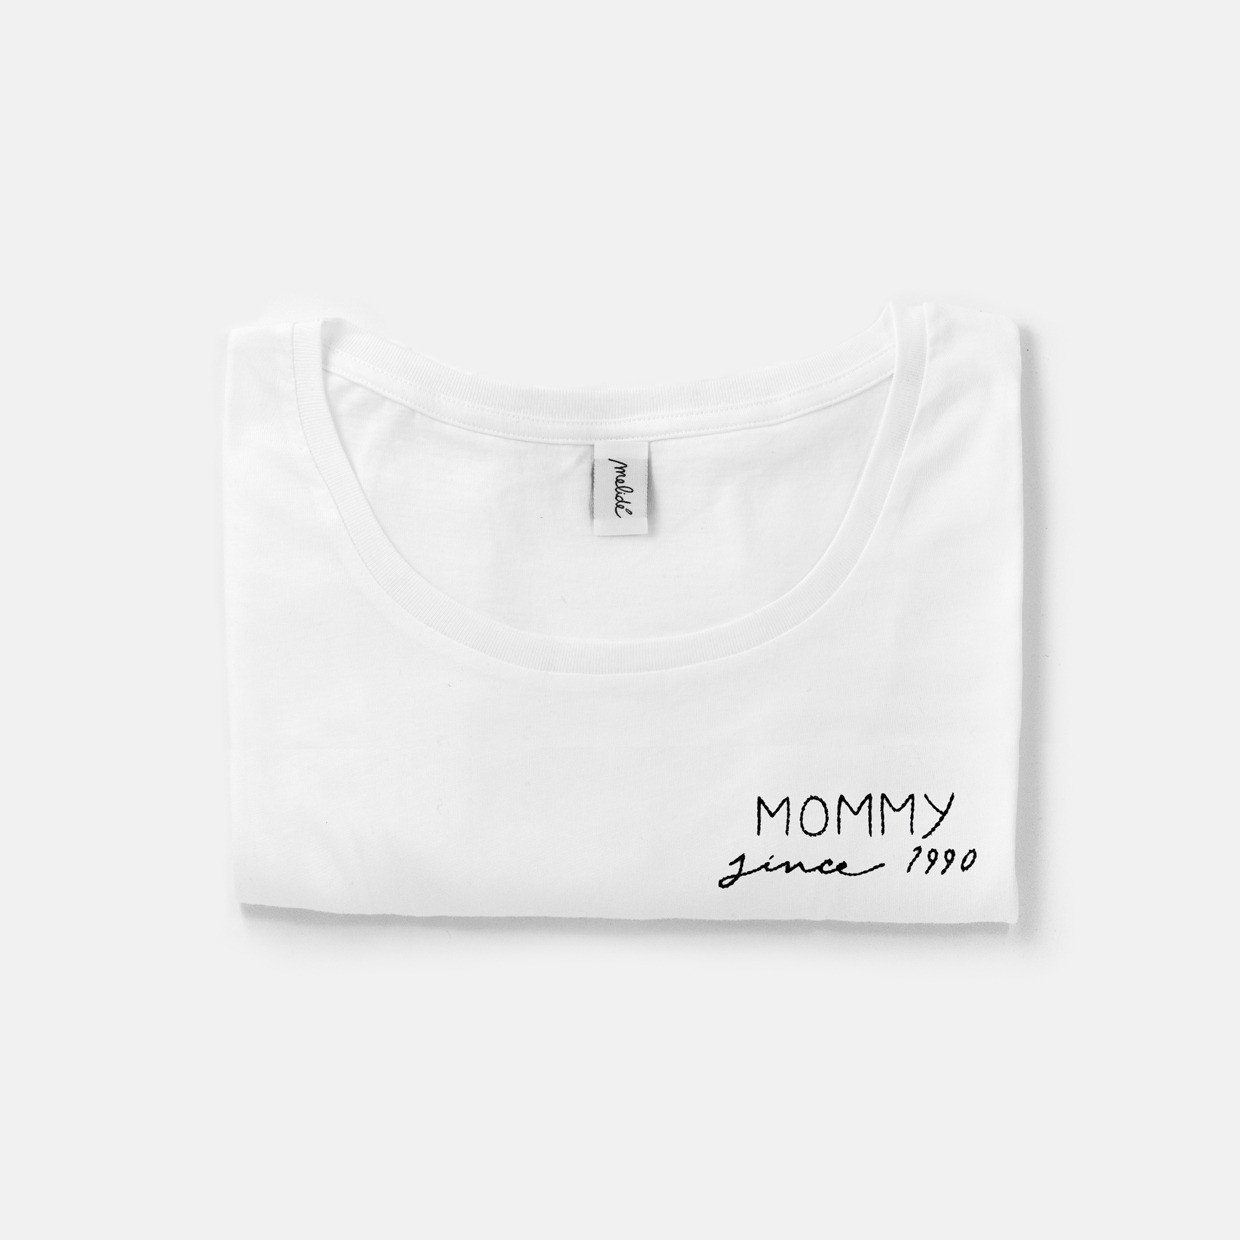 The MOMMY SINCE wide neck tee